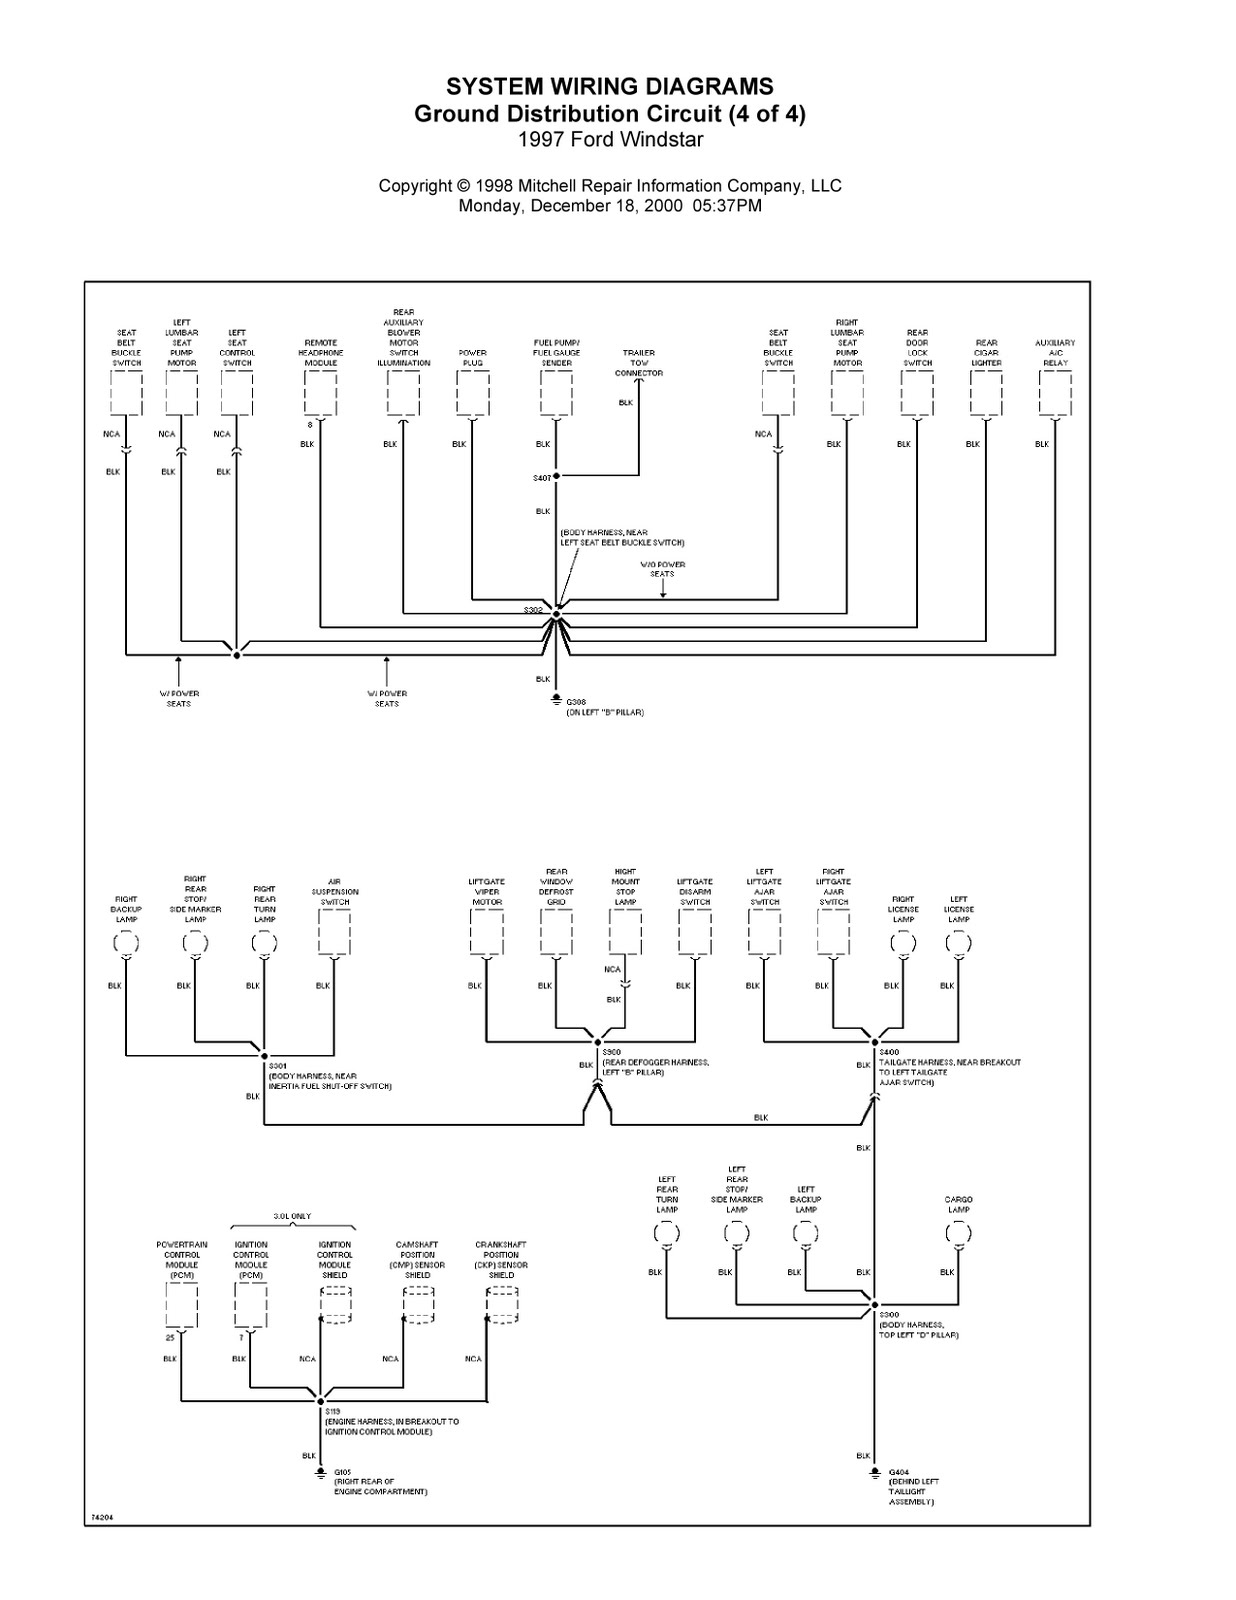 2006 Ford Windstar Stereo Wiring Diagram Schematics Diagrams 1996 3 8 Engine 2000 Exploded View Free Wiper Motor Schematic 01